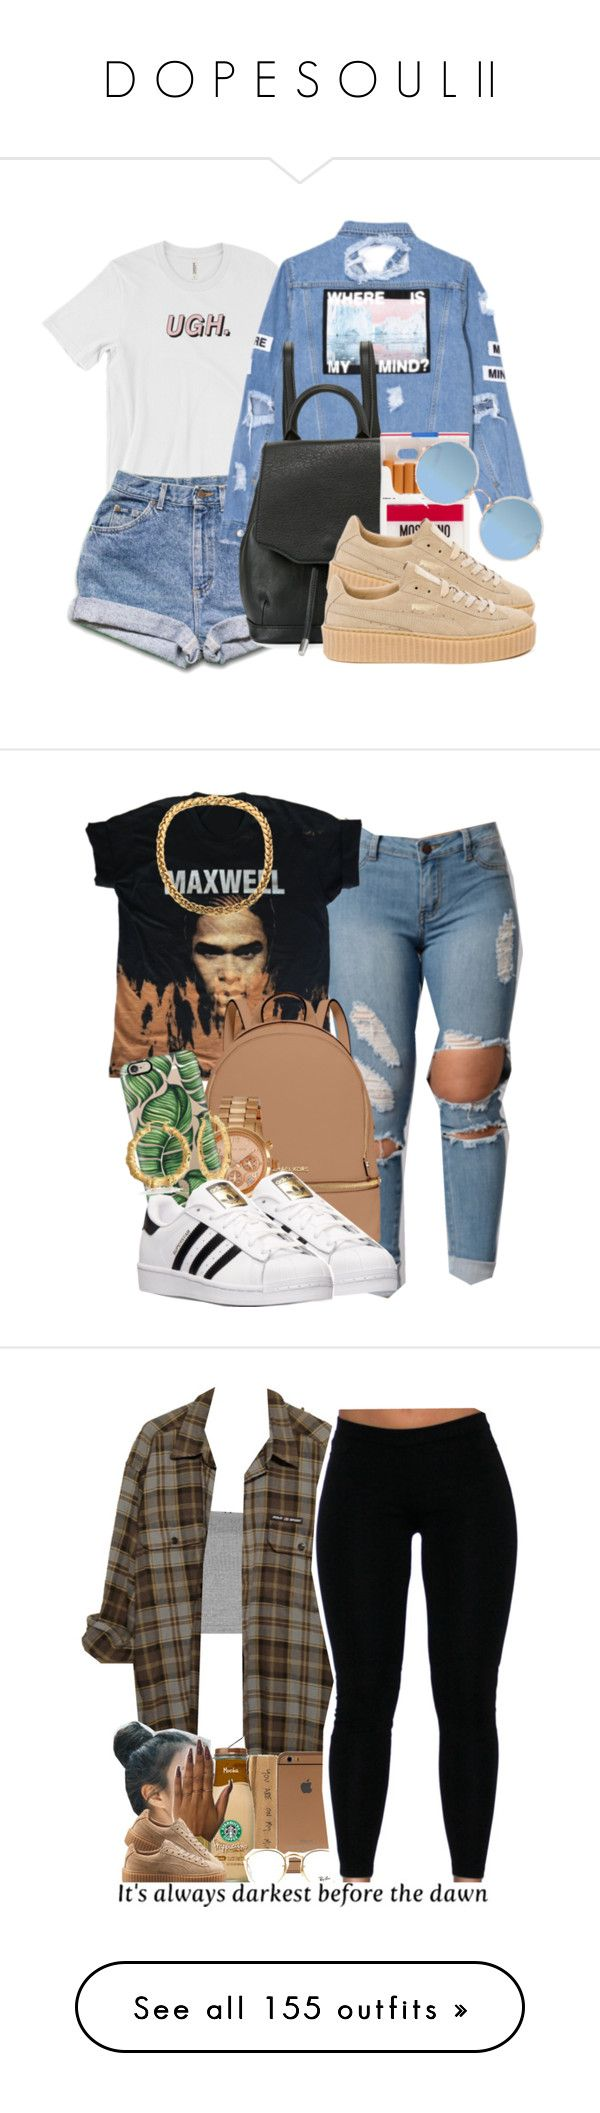 """D O P E S O U L II"" by brandii2016 ❤ liked on Polyvore featuring rag & bone, Moschino, Puma, Sunday Somewhere, MICHAEL Michael Kors, Michael Kors, Casetify, Bling Jewelry, adidas and Topshop"